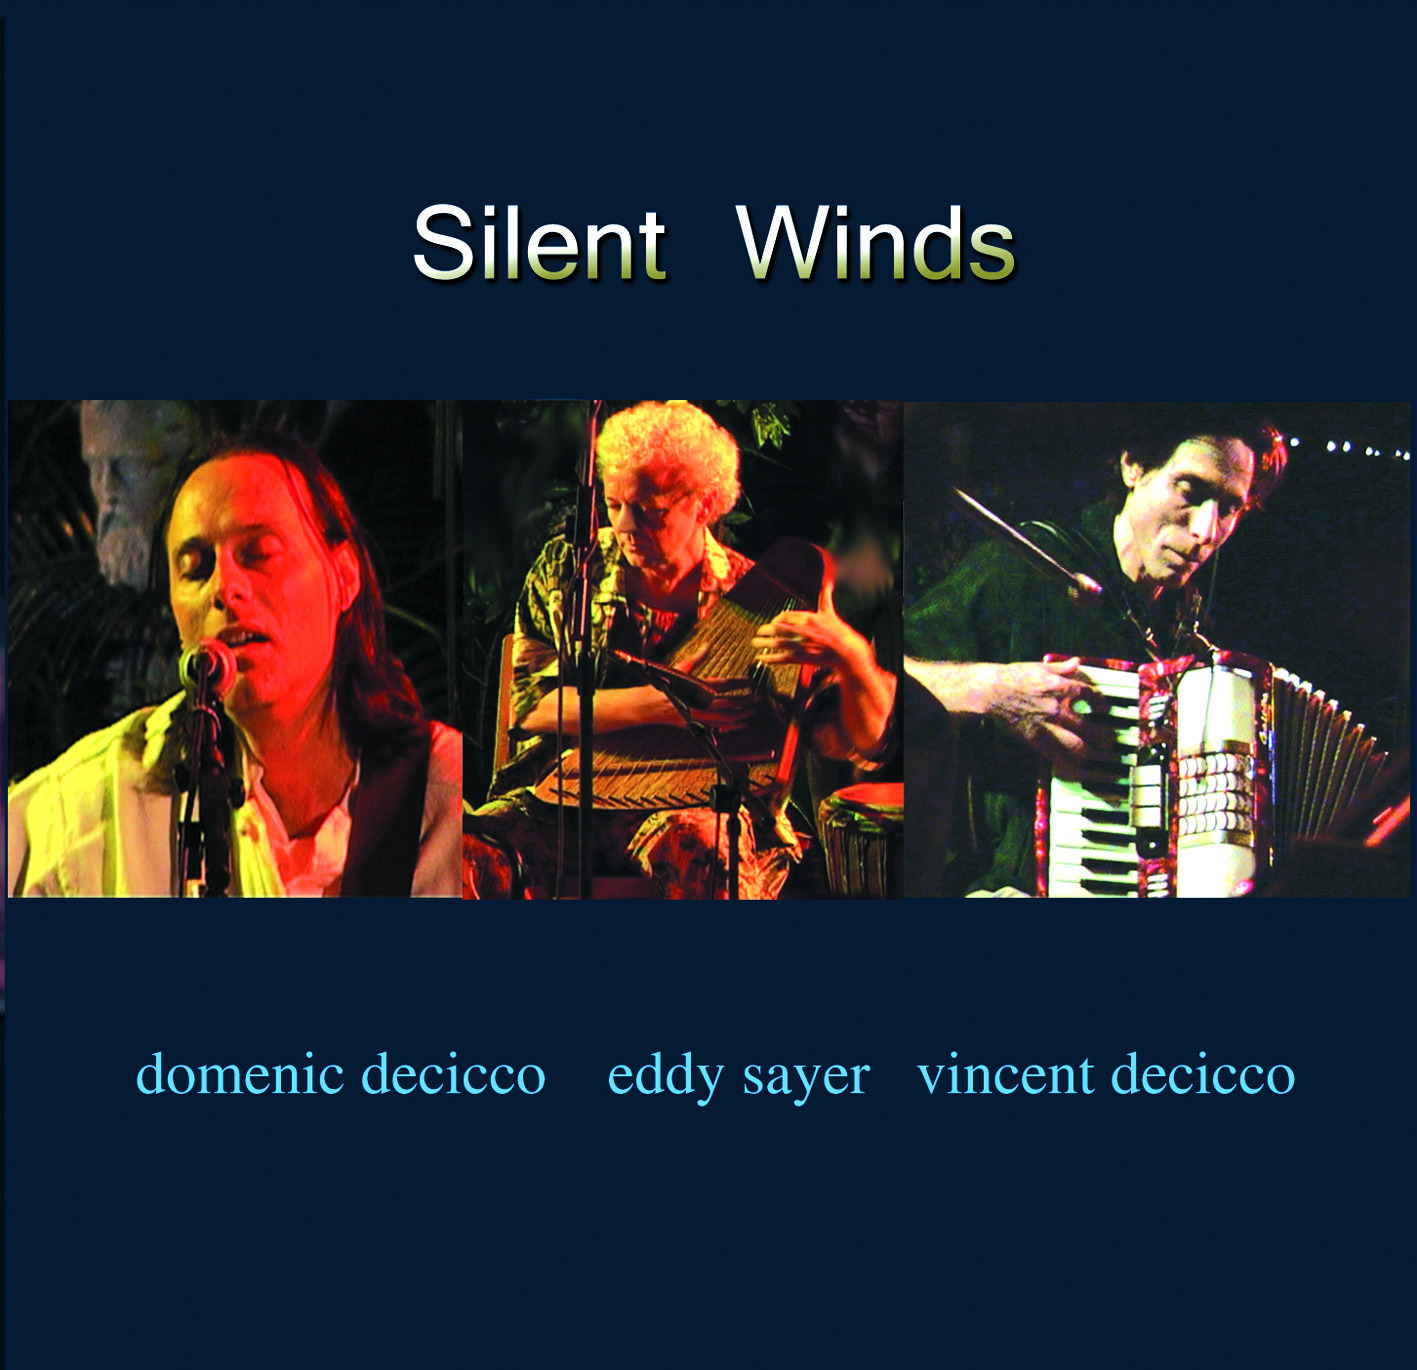 Silent Winds